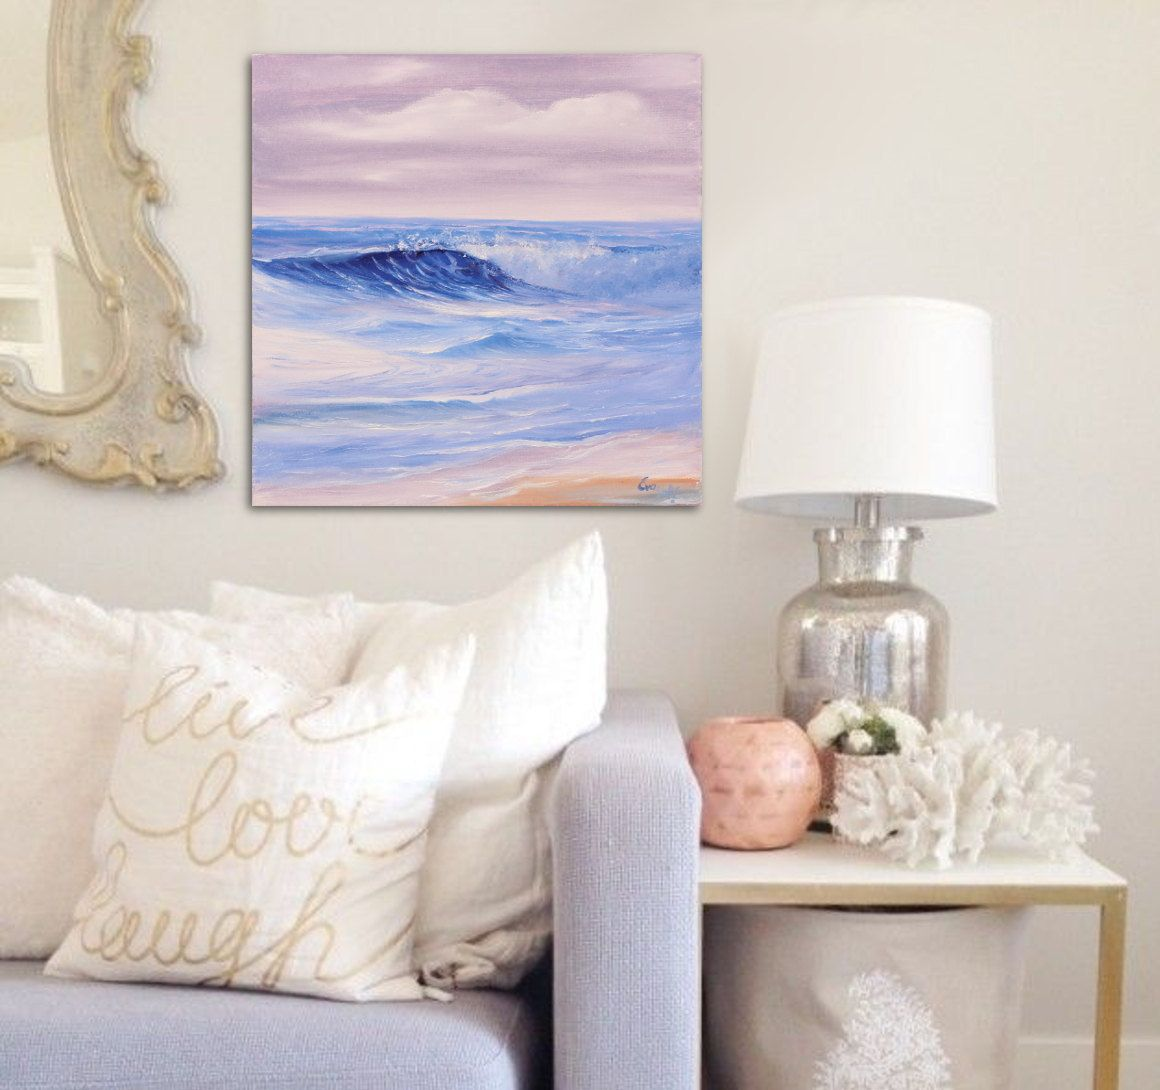 Home interiors and gifts paintings - Here Comes The Sun In A Home Interior Fresh Original Seascape Miniature Painting A Perfect Gift